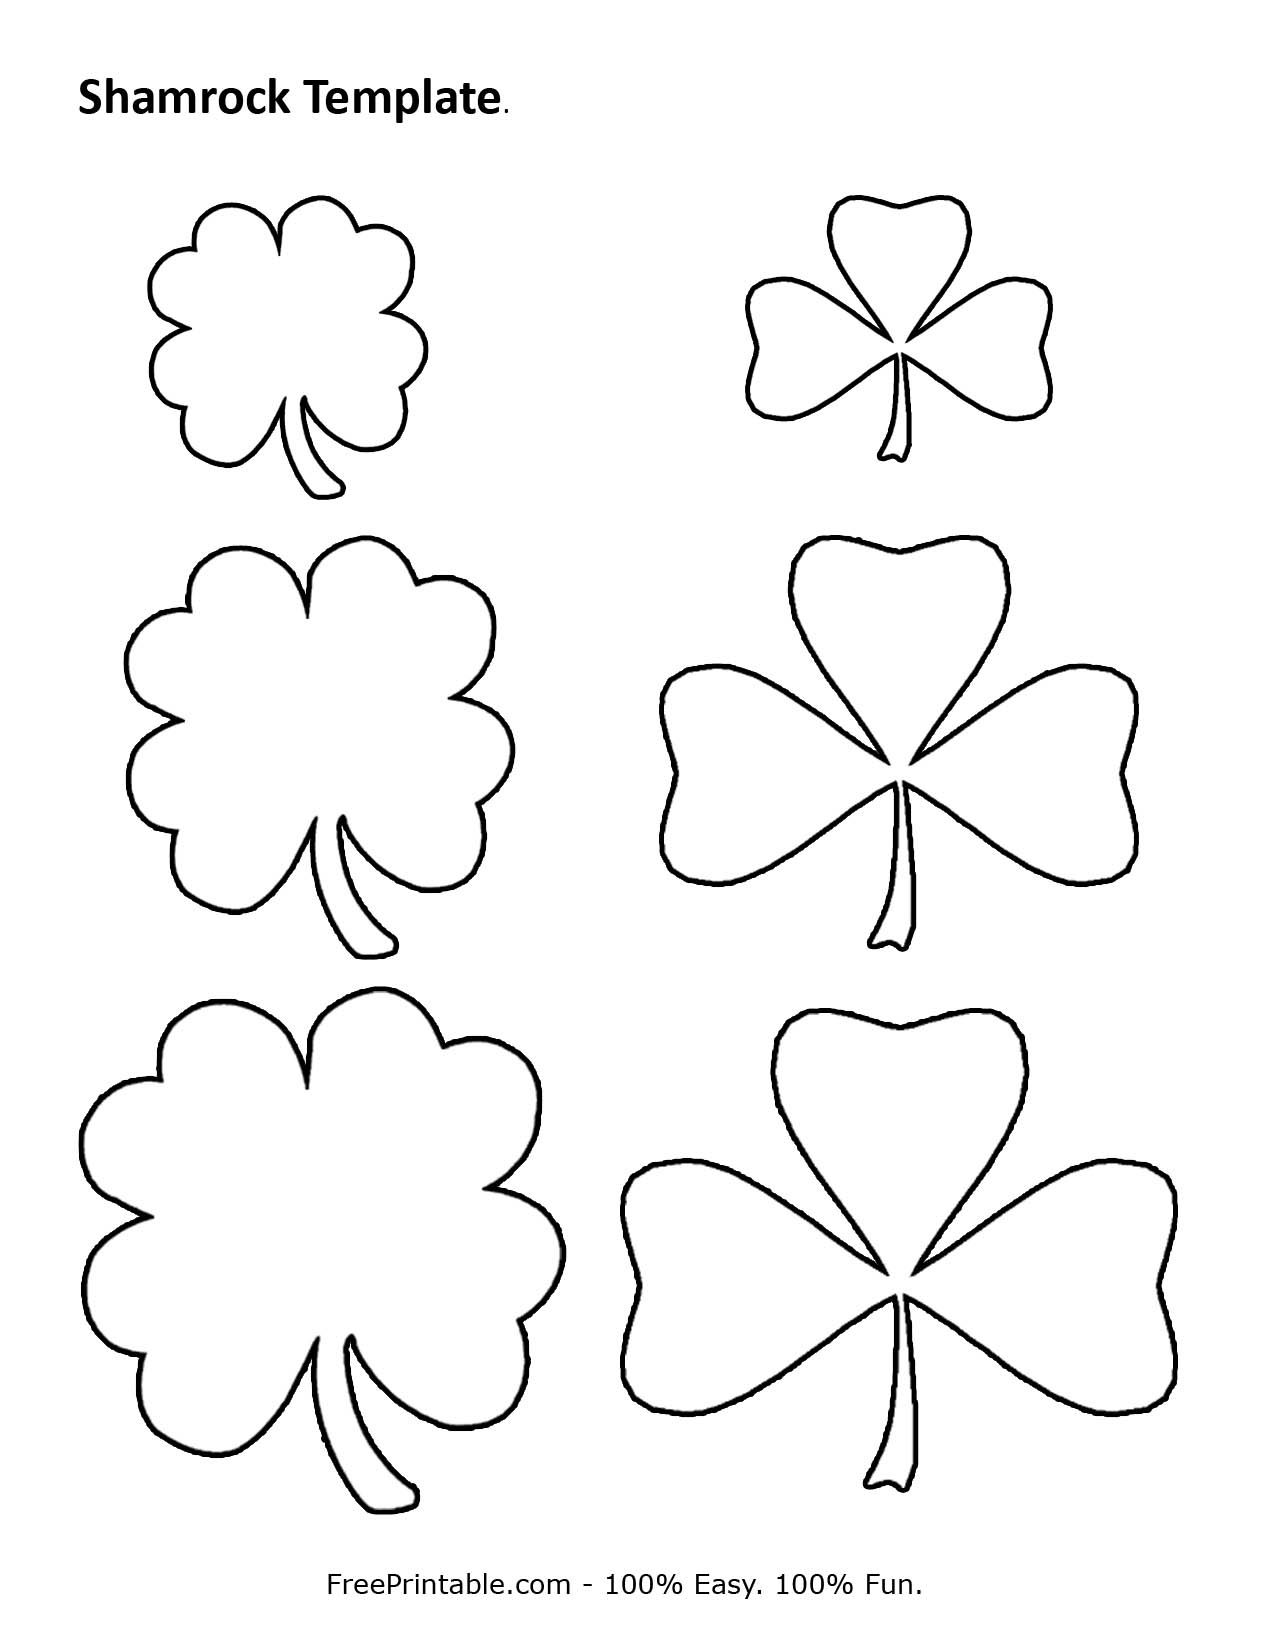 Customize Your Free Printable Shamrock Template